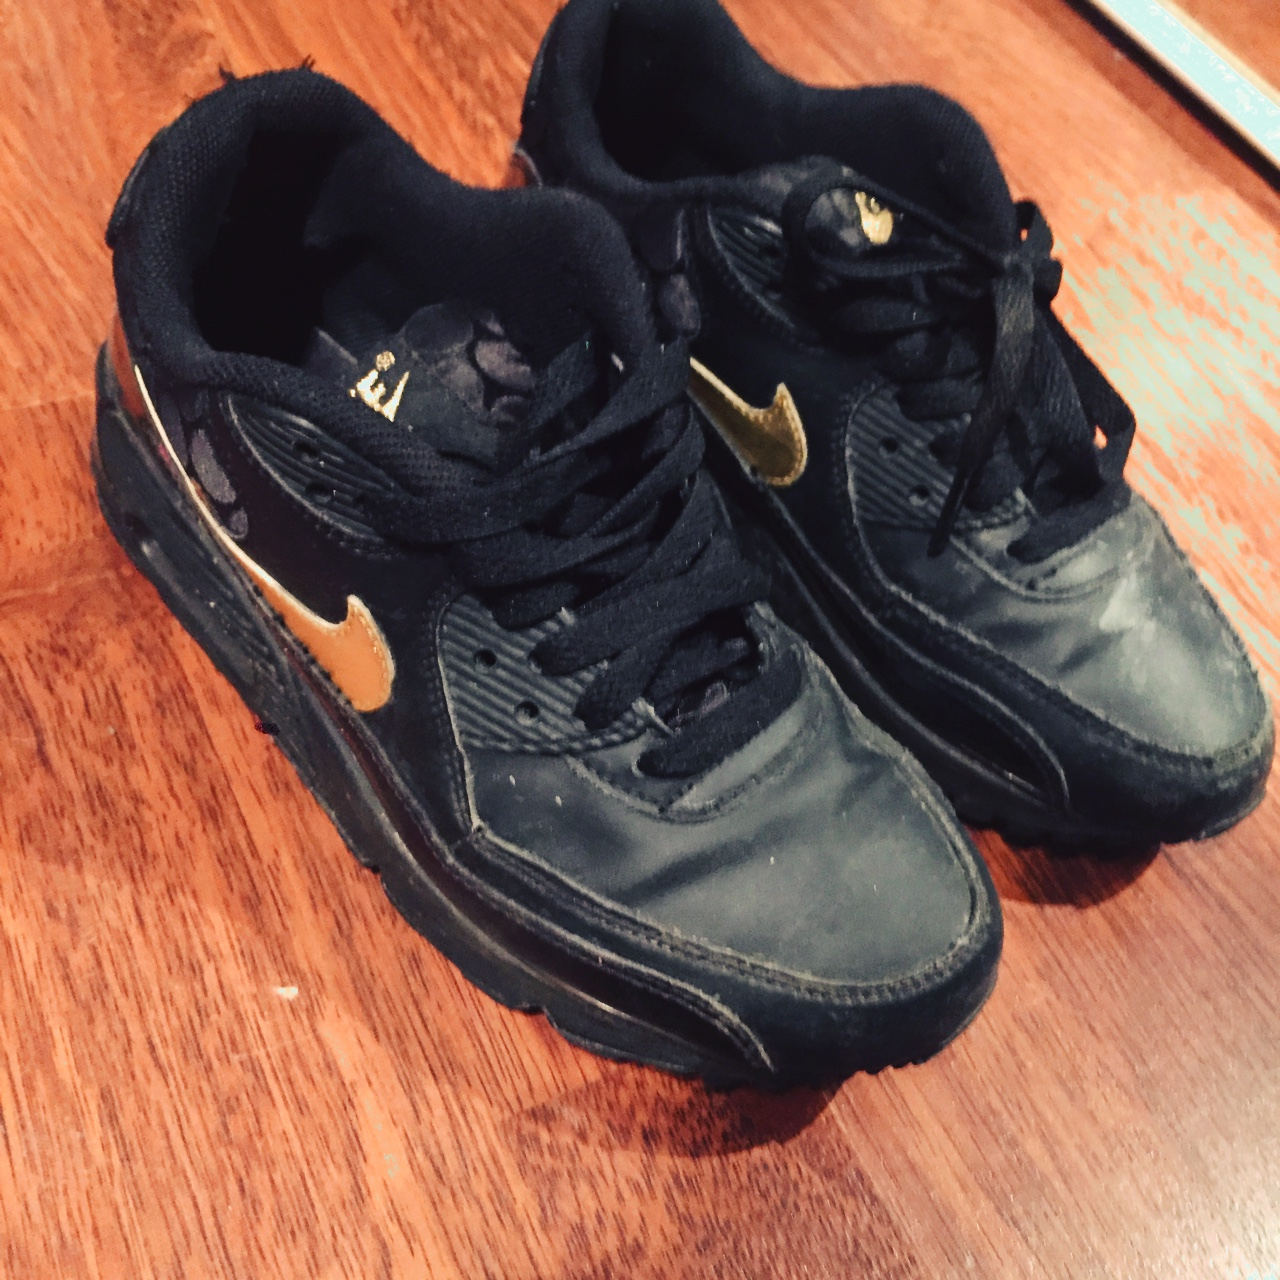 Black Nike air max 90 size 4 black with